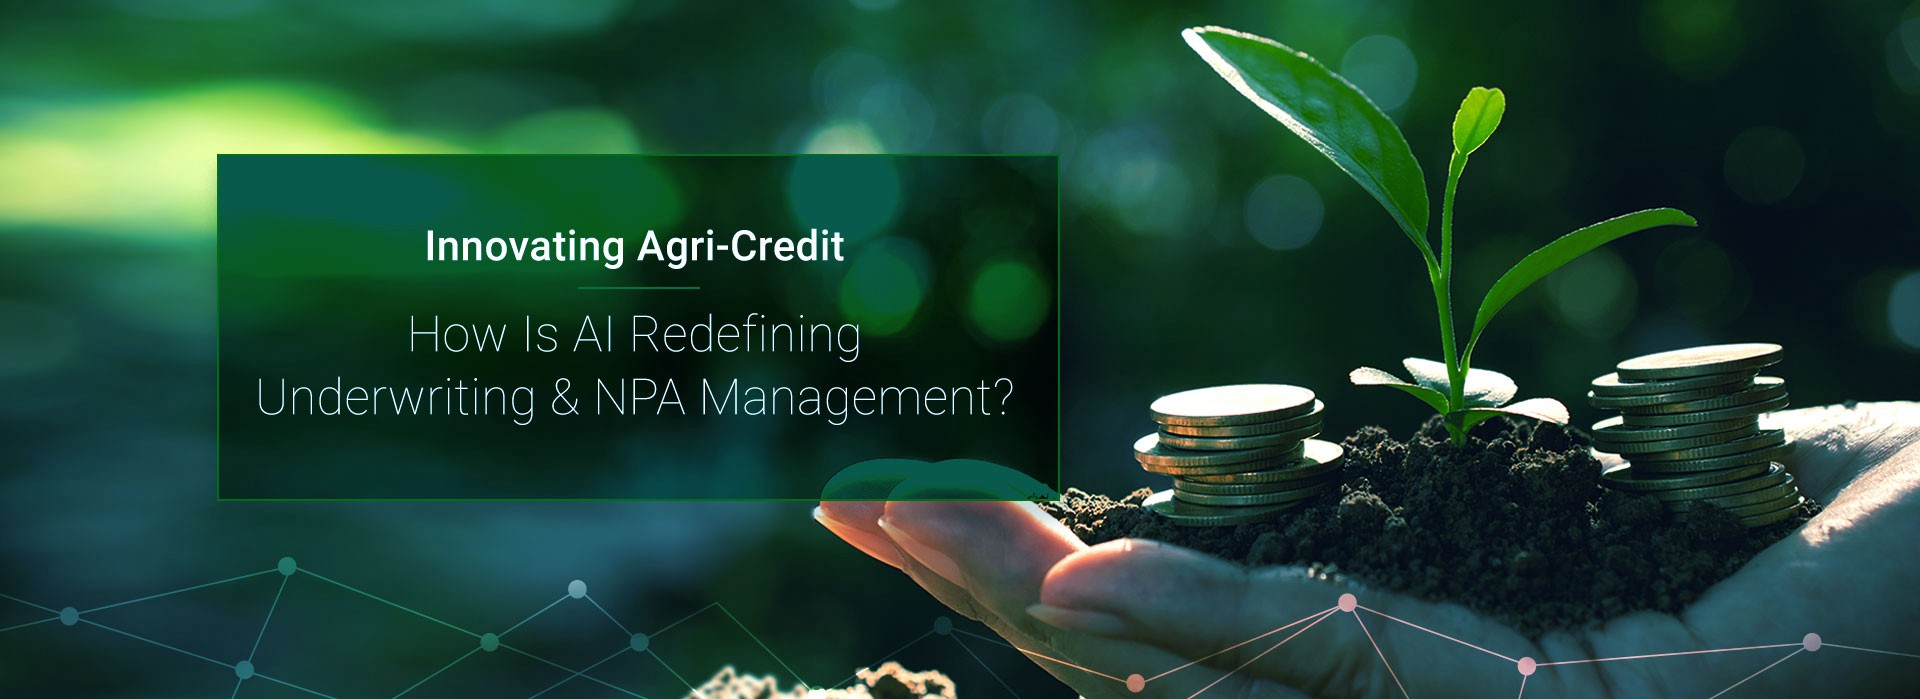 """Banner Image: """"Innovating Agri-Credit—How Is AI Redefining Underwriting & NPA Management?"""""""